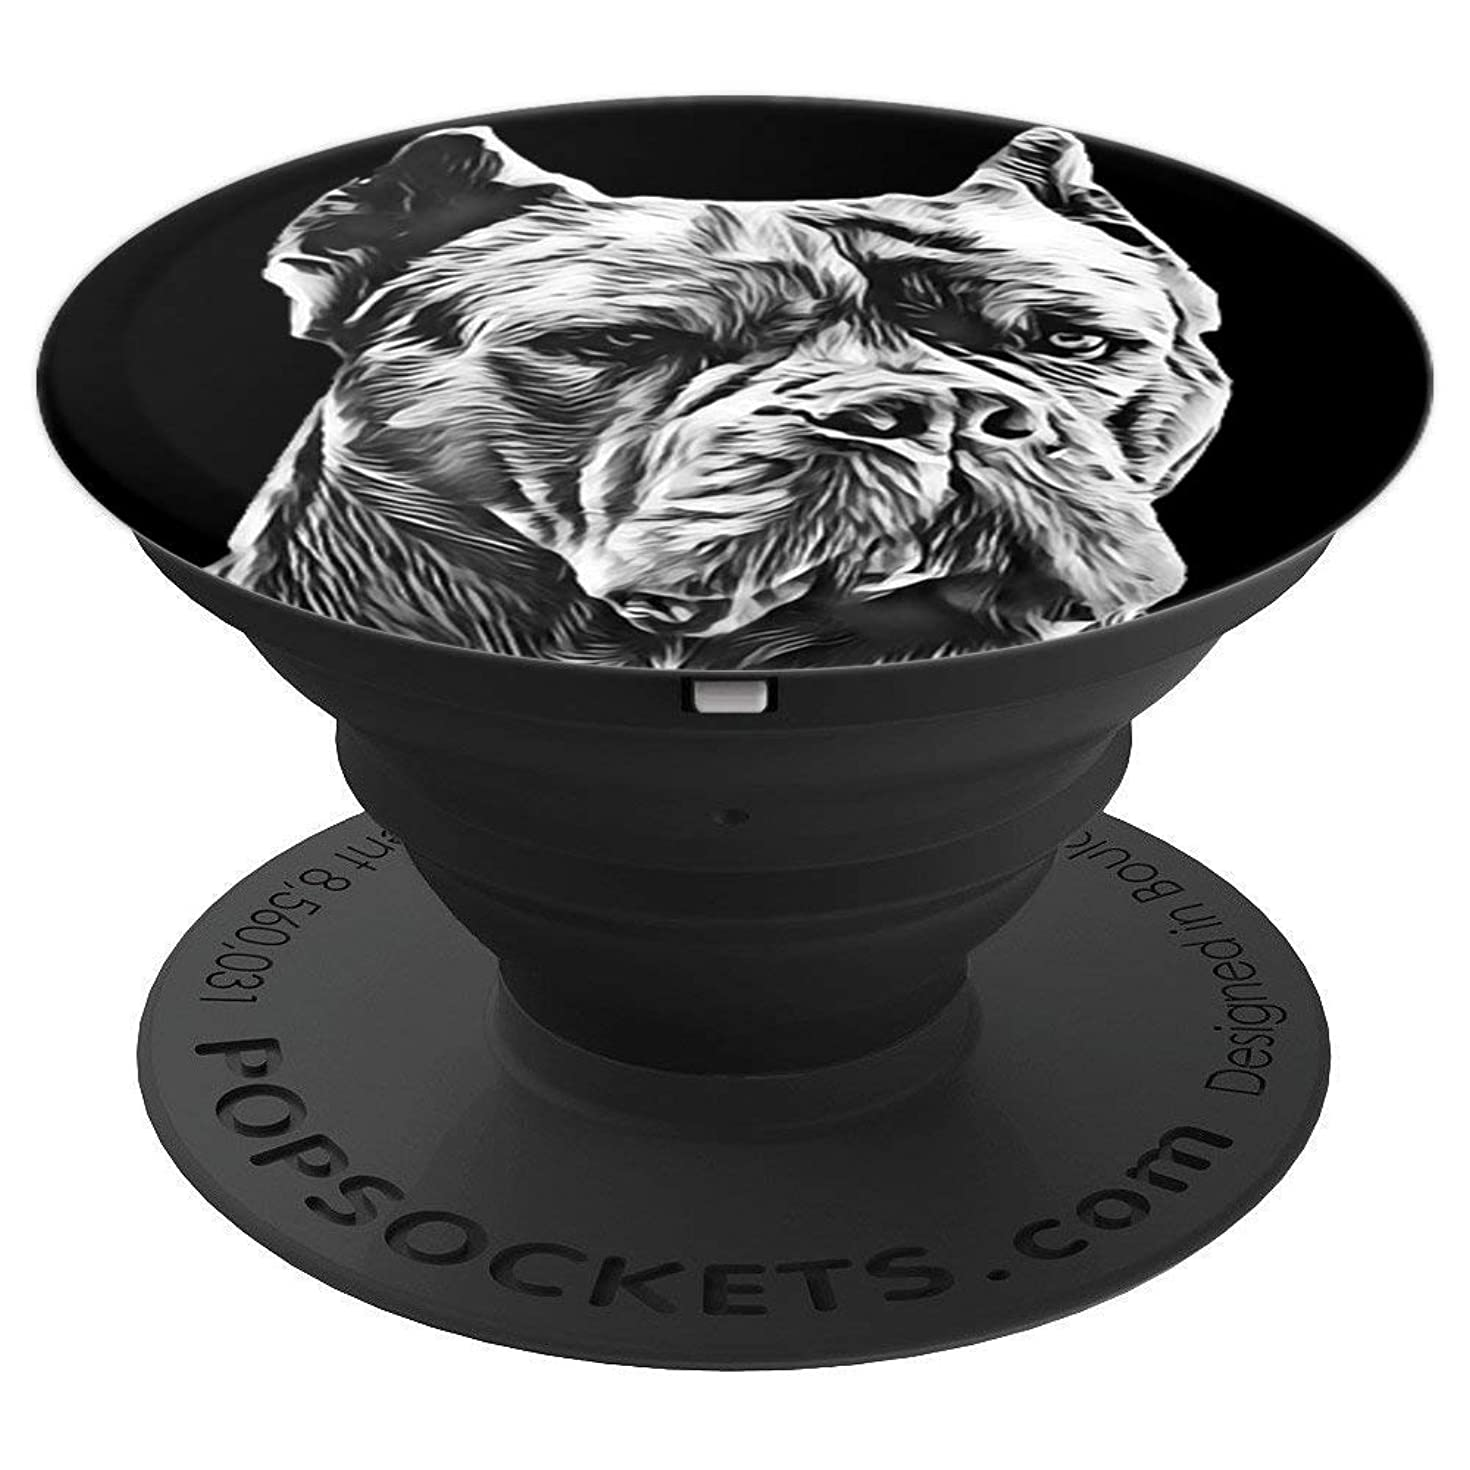 Cane Corso Italian Mastiff Giant Guard Dog Pet Portrait - PopSockets Grip and Stand for Phones and Tablets